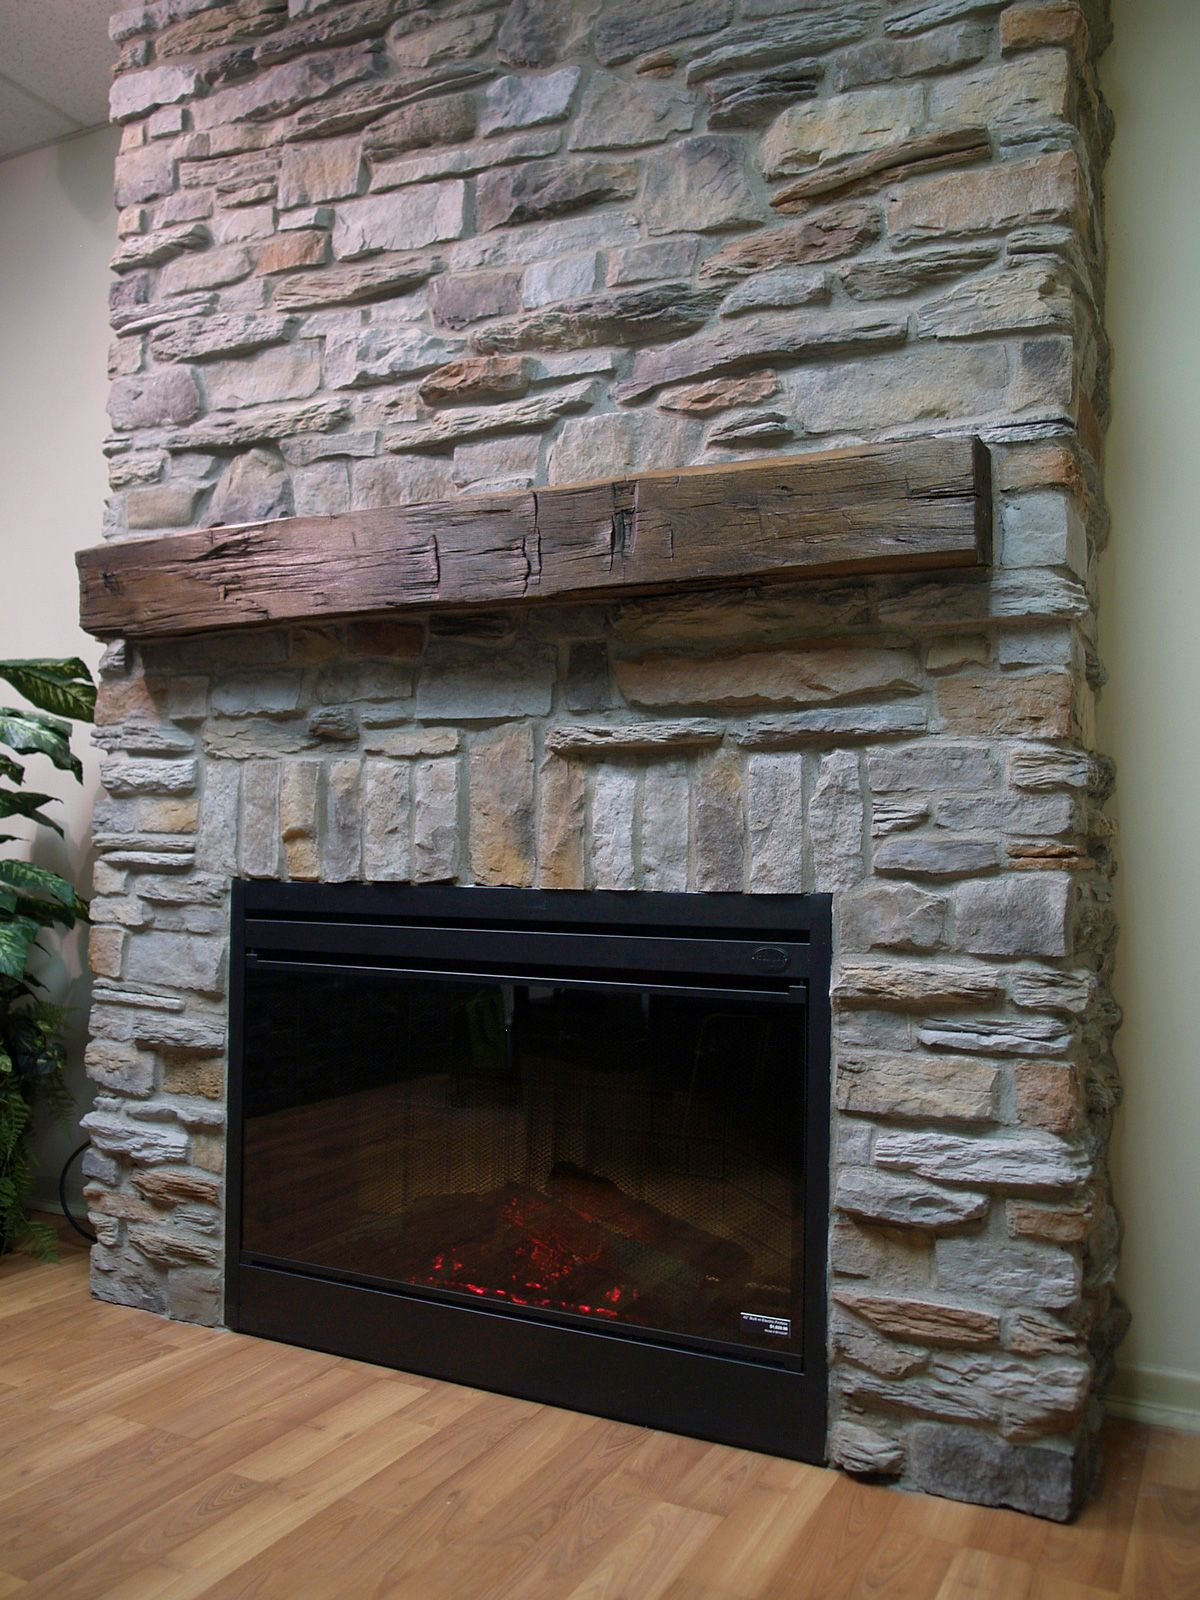 Fireplace hearth stone ideas house pinterest stone veneer fireplace stone fireplaces and - Images of stone fireplaces ...